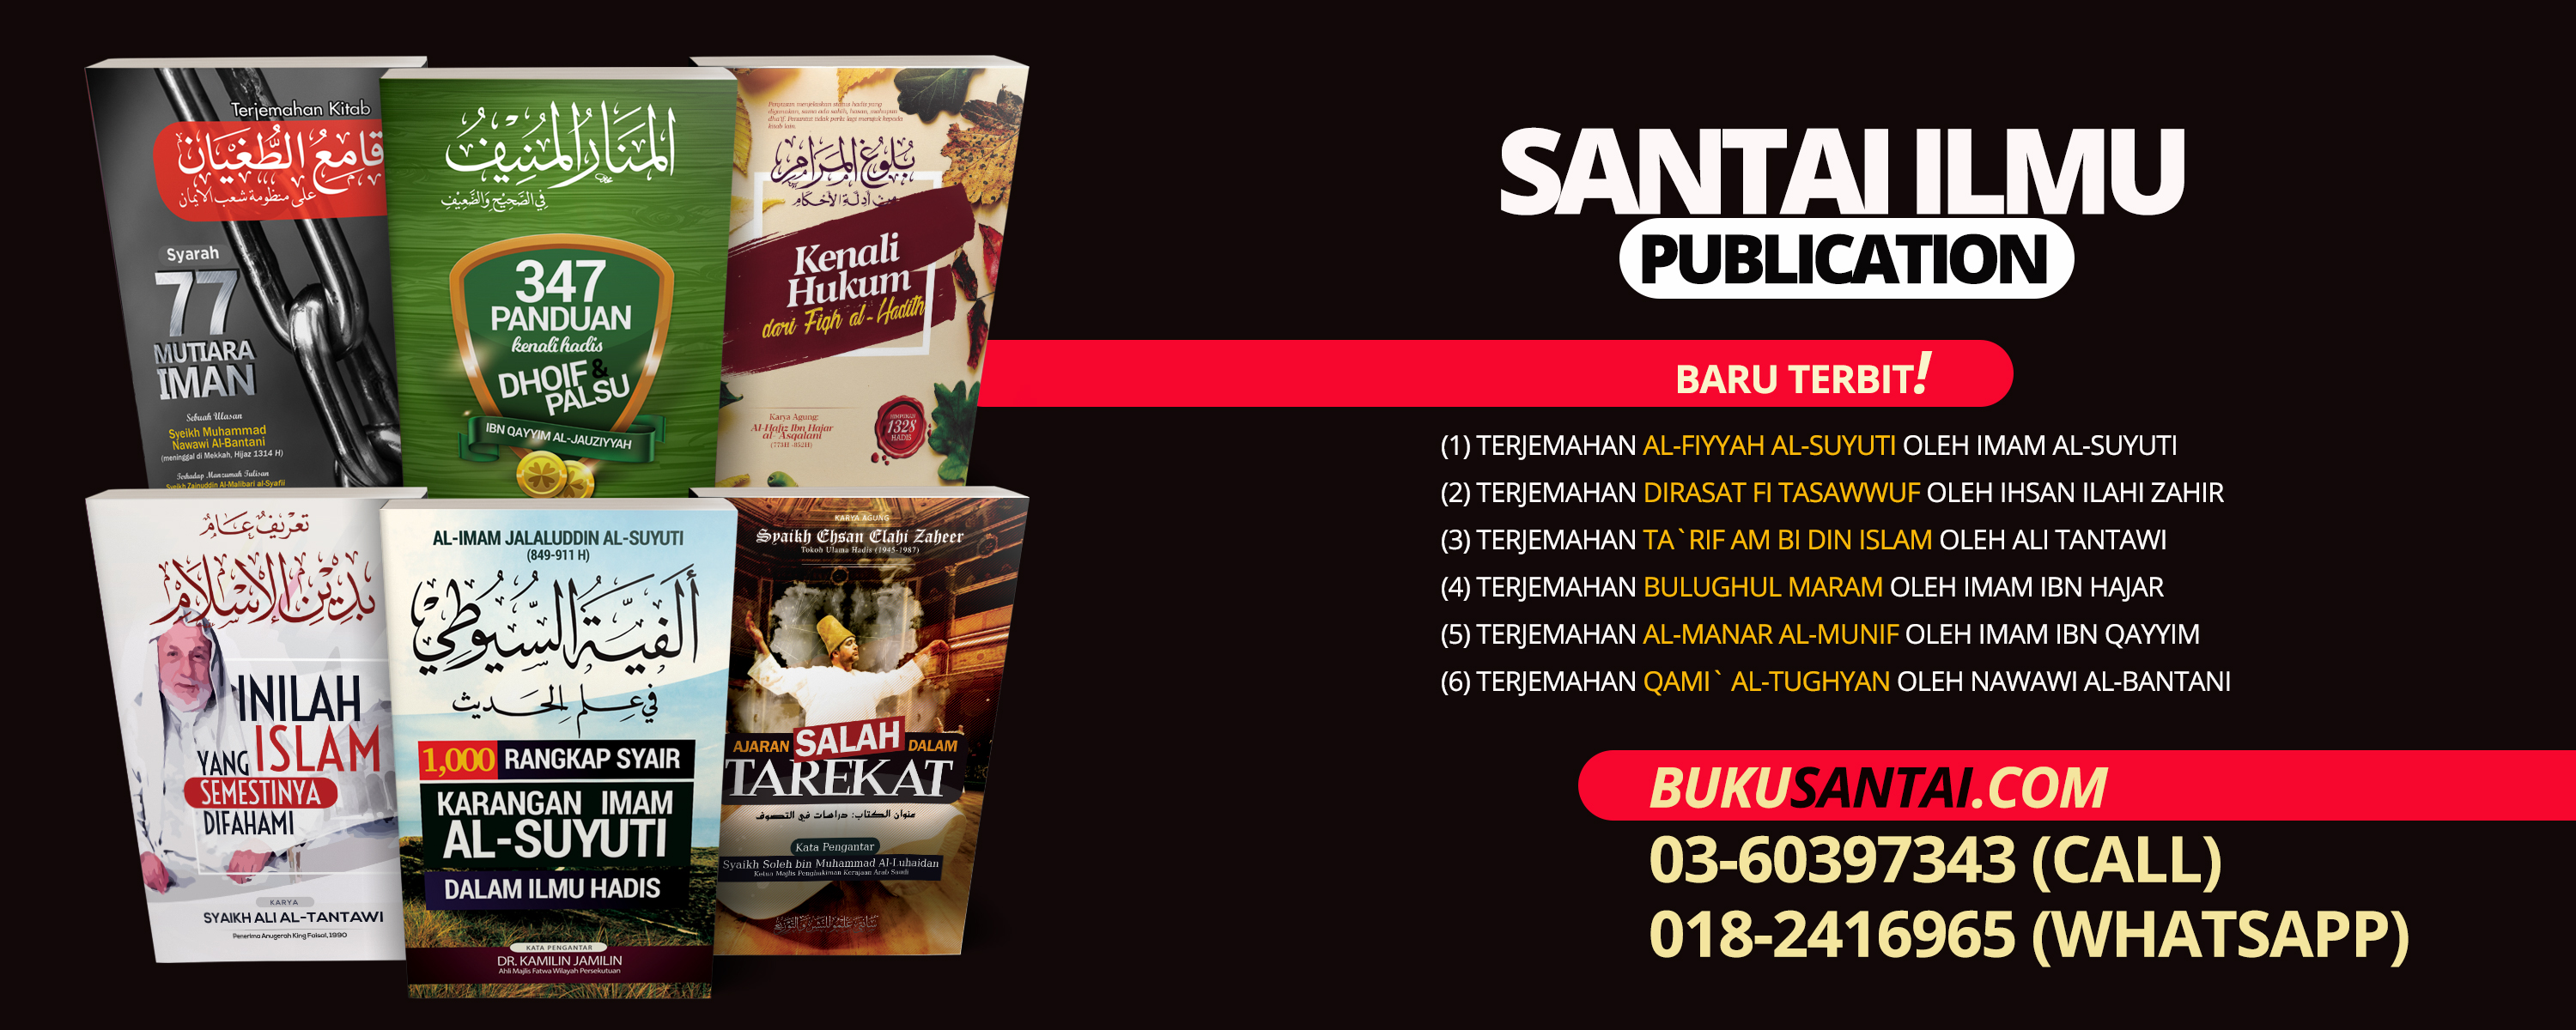 Santai Ilmu Publication